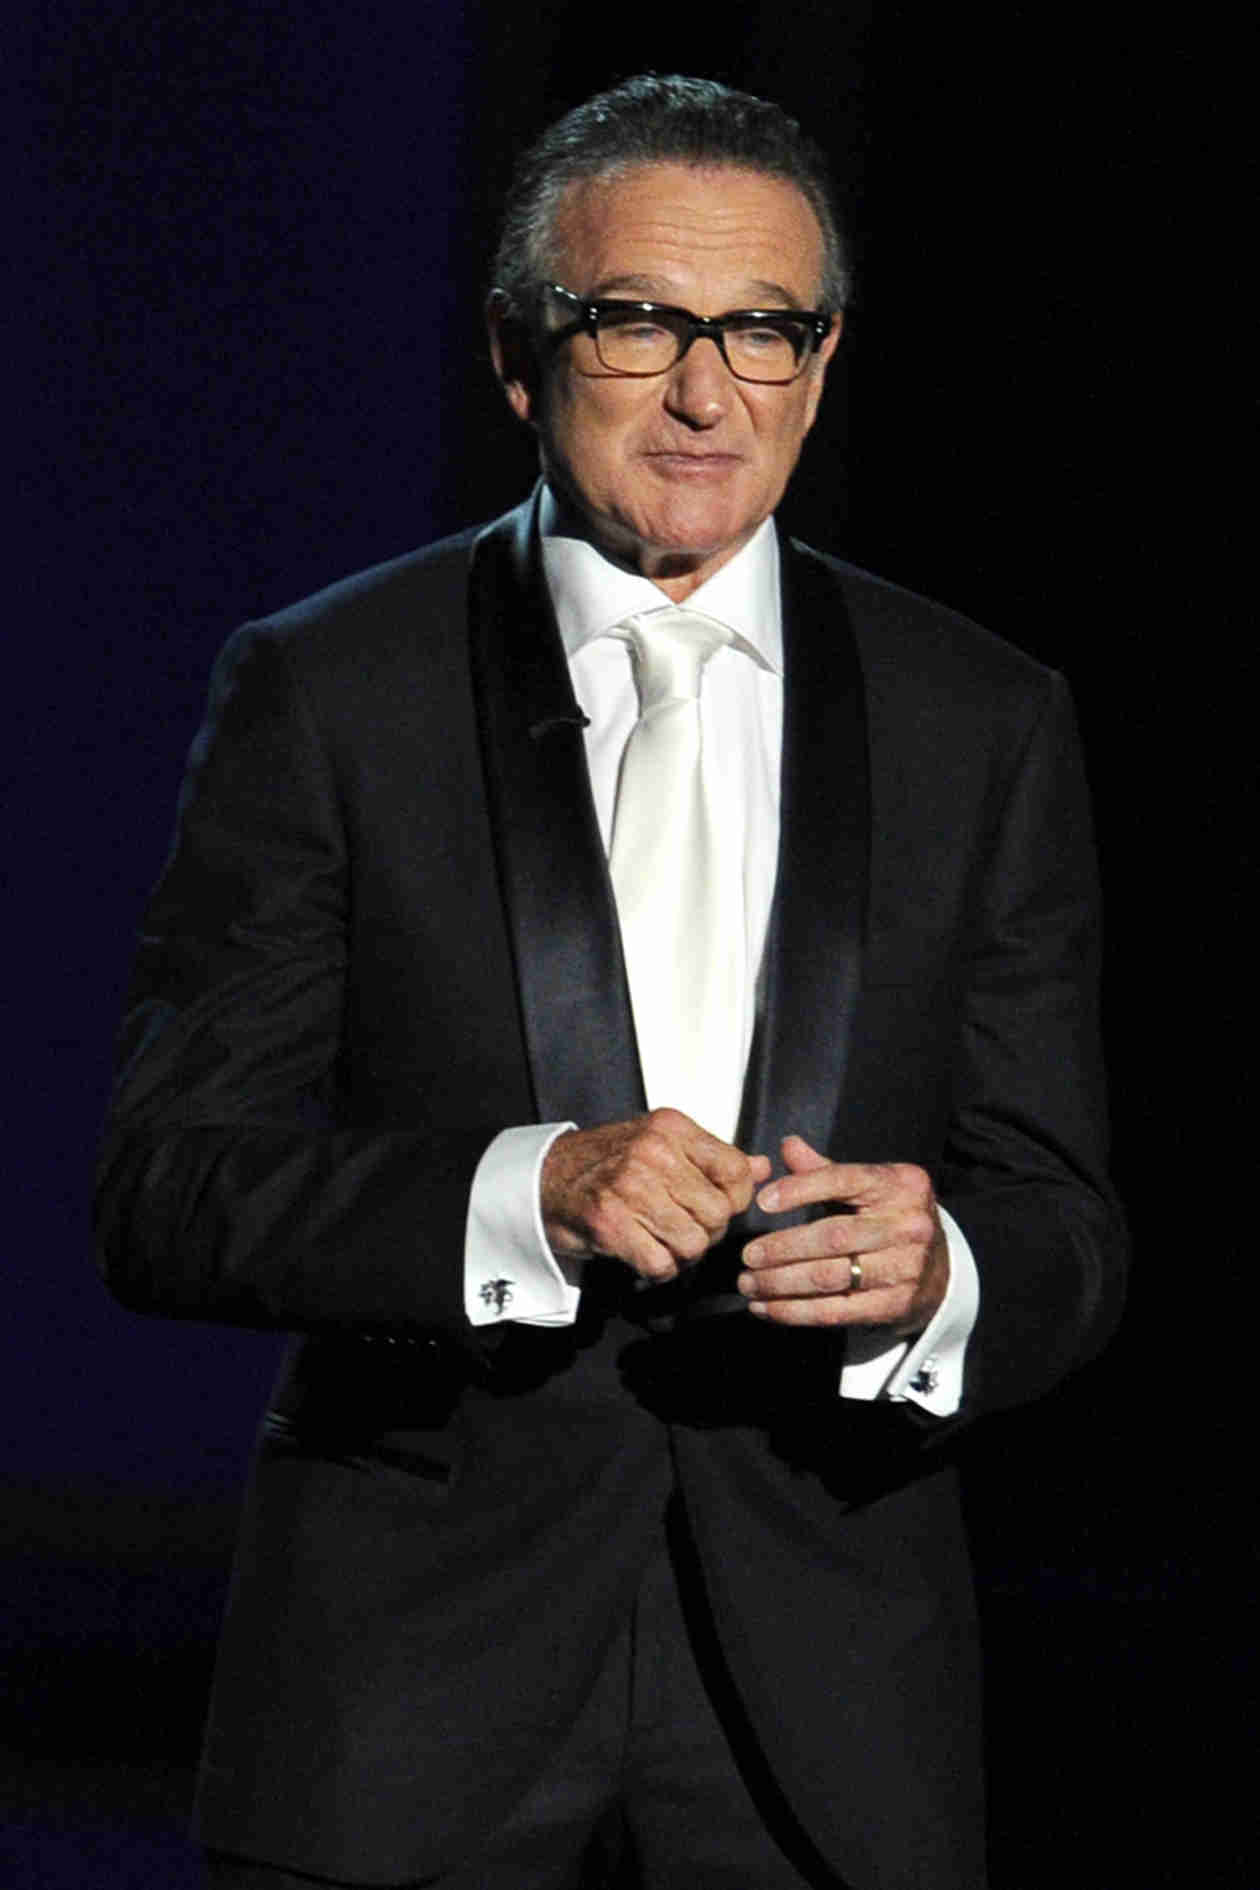 2014 Emmys: Billy Crystal's Robin Williams Eulogy Brings Him to Tears (VIDEO)